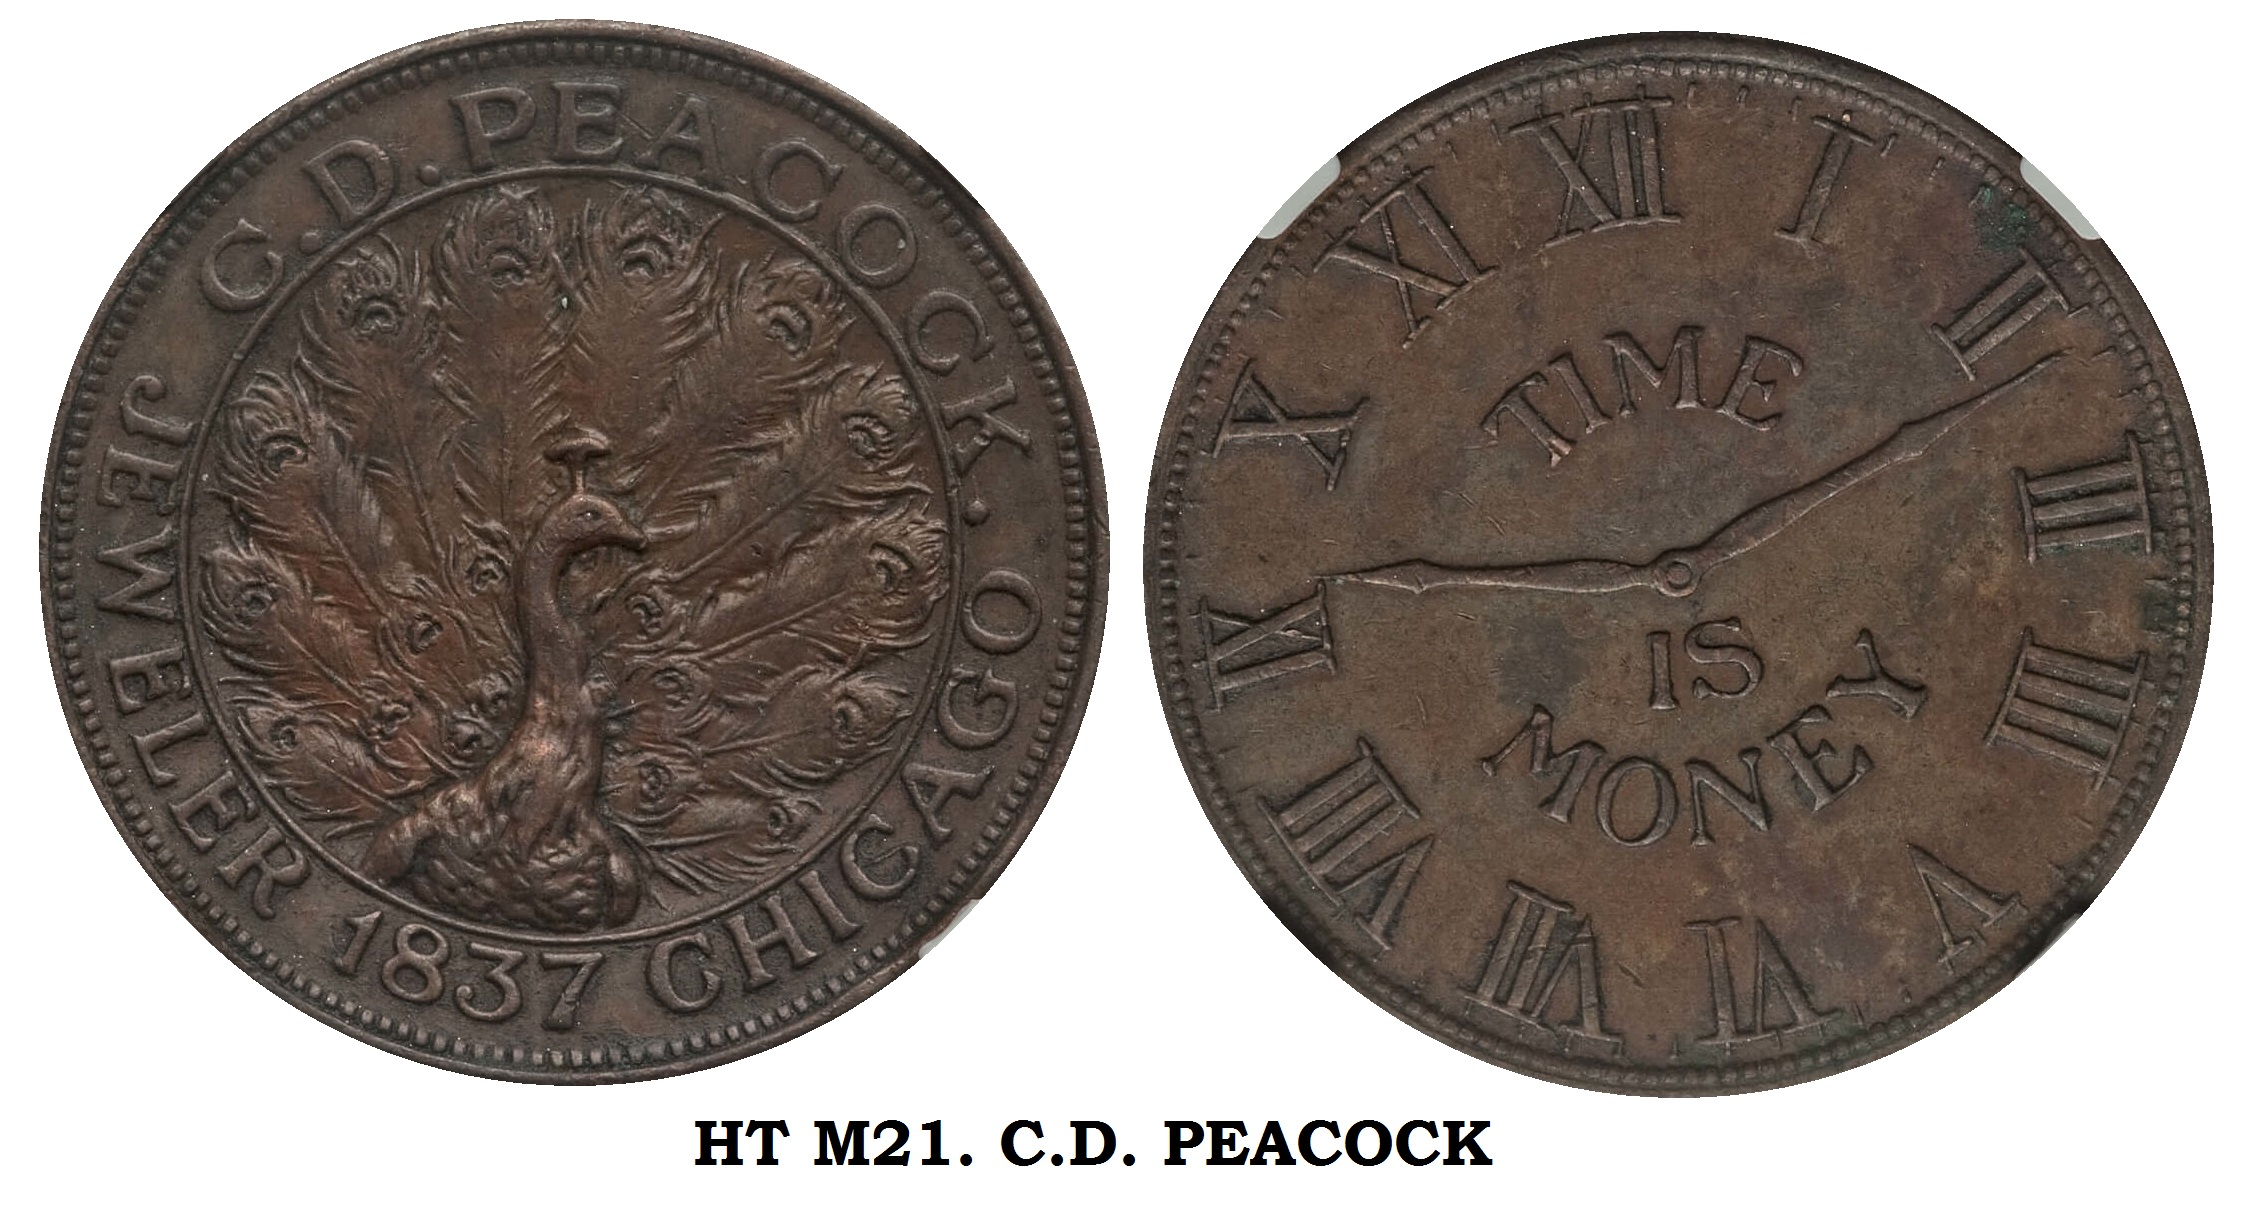 HT-M21 C.D. PEACOCK JEWELER CHICAGO